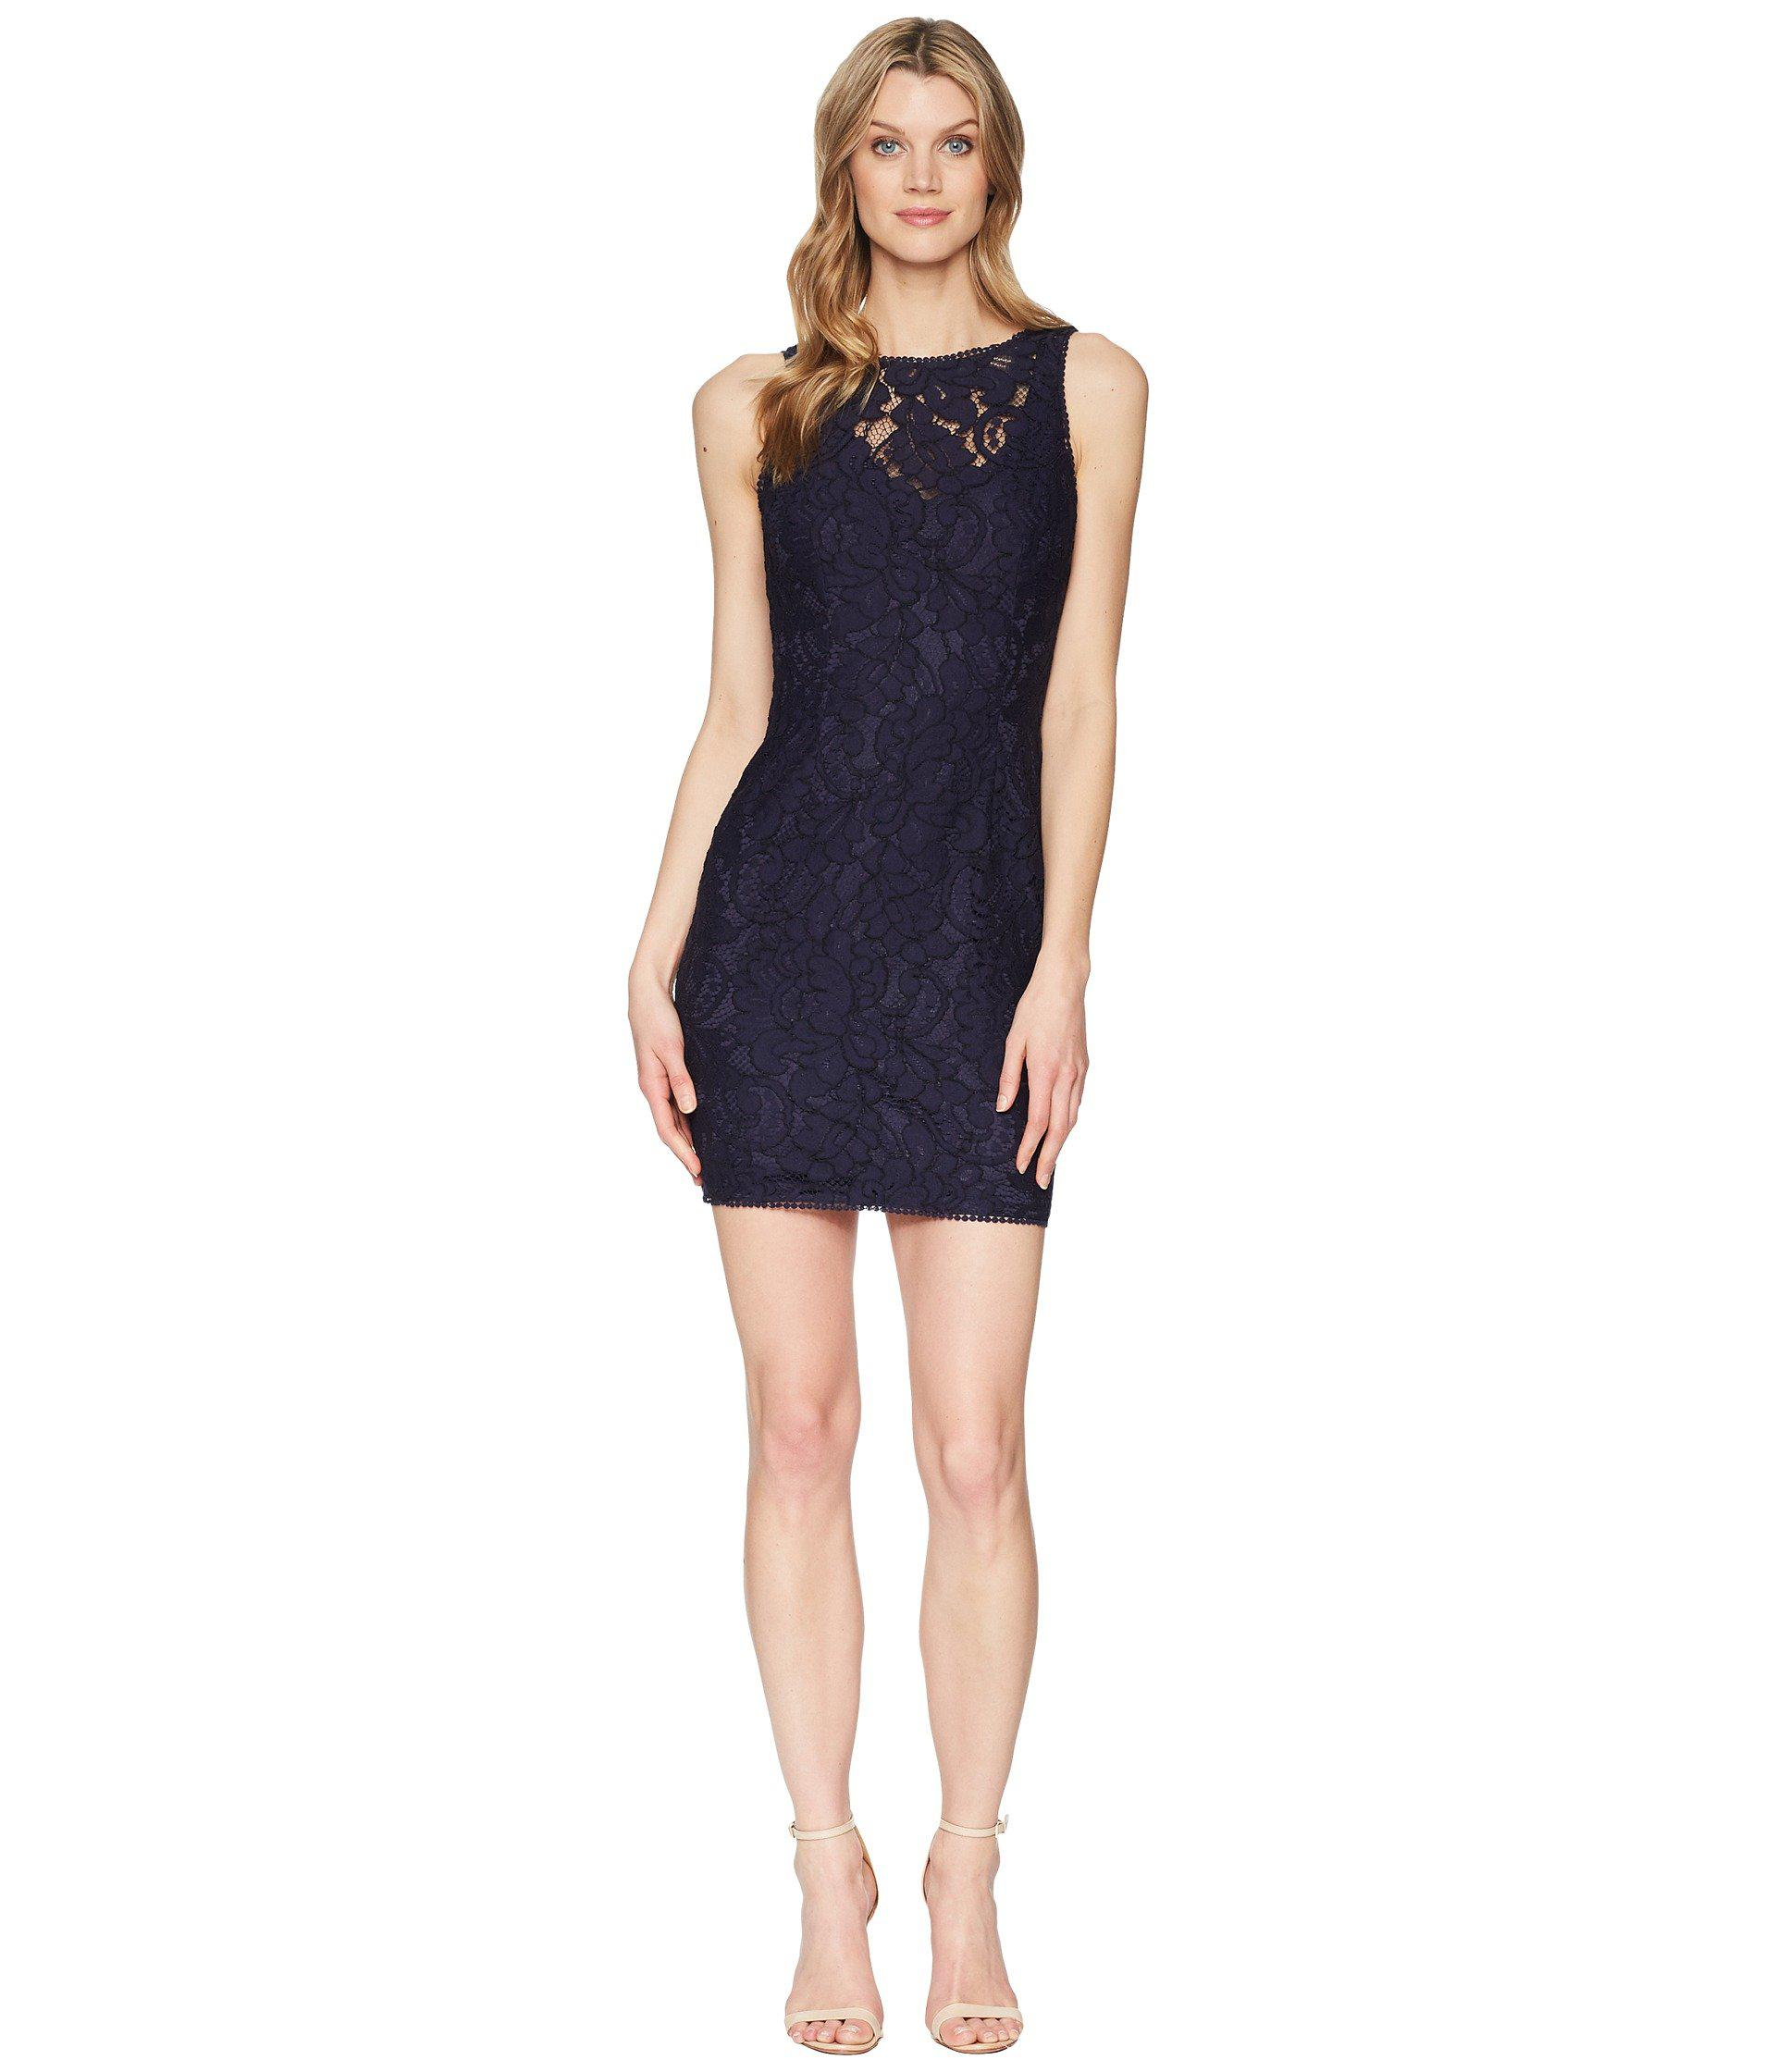 d2162328 Lyst - Adrianna Papell Lace Sheath Dress in Blue - Save 35%